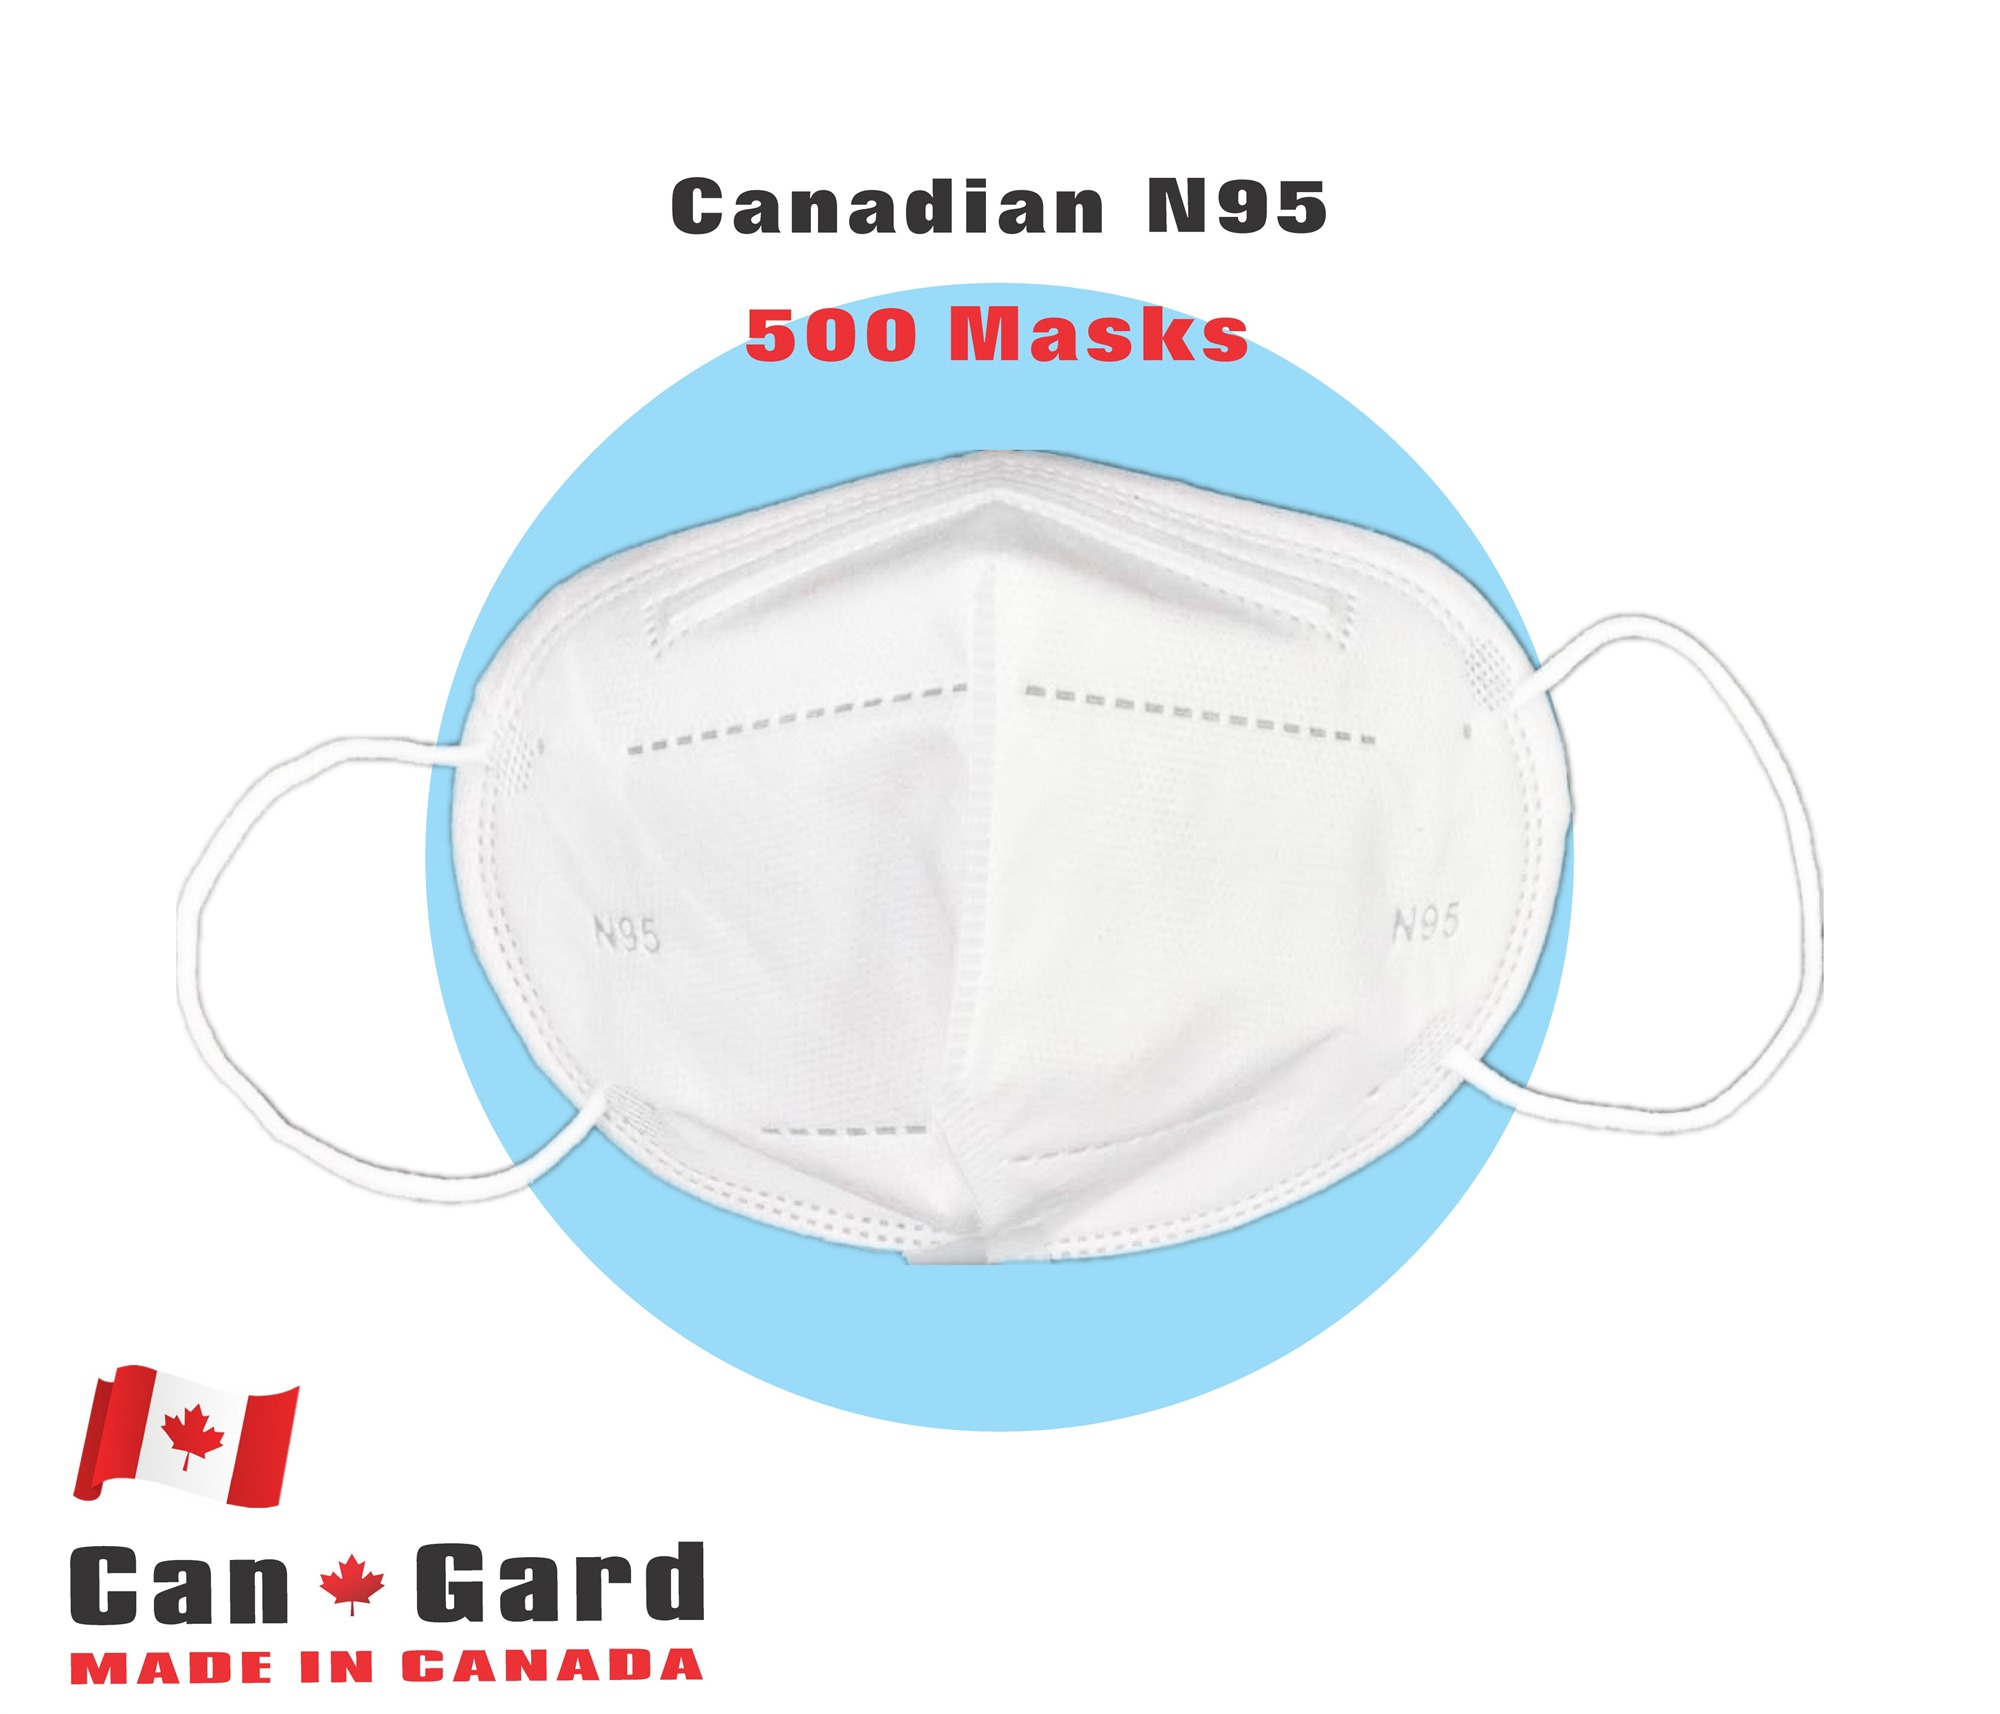 CanGard Care - Canadian N95